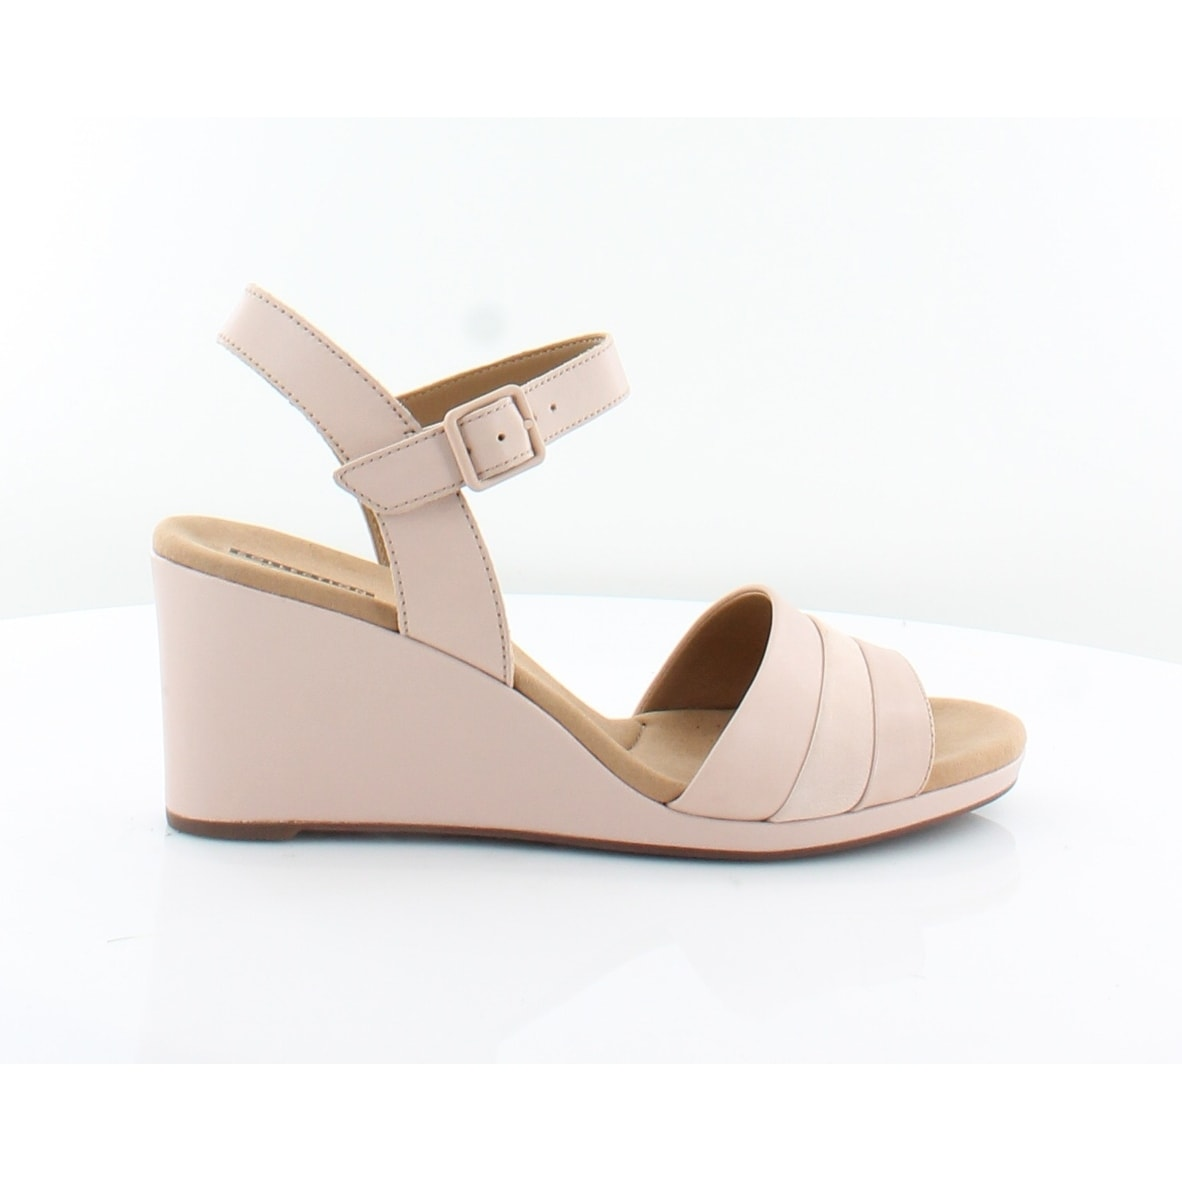 84cb9180a116 Shop Clarks Lafley Aletha Women s Sandals Dusty Pink - 10 - Free Shipping  Today - Overstock - 27223331